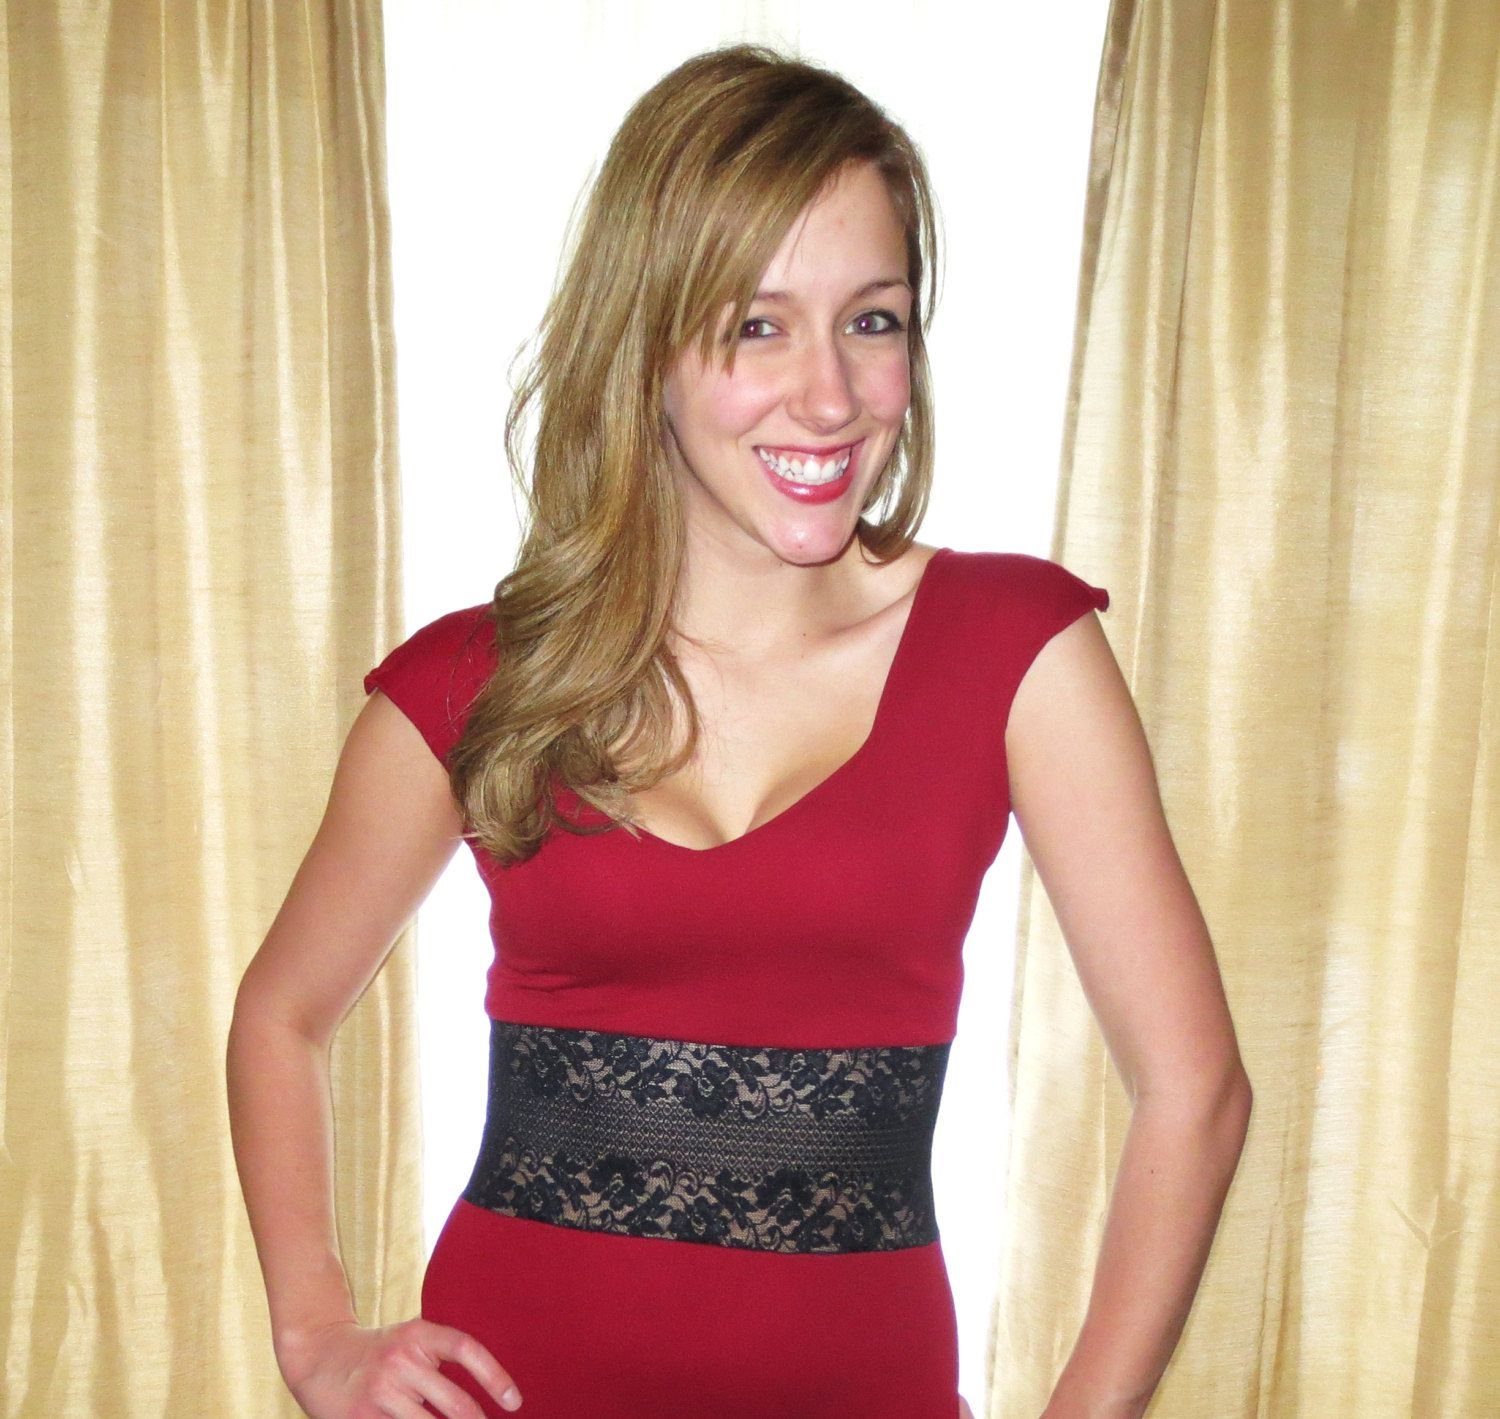 Sweet red dress for a vday date stunning red dress with black